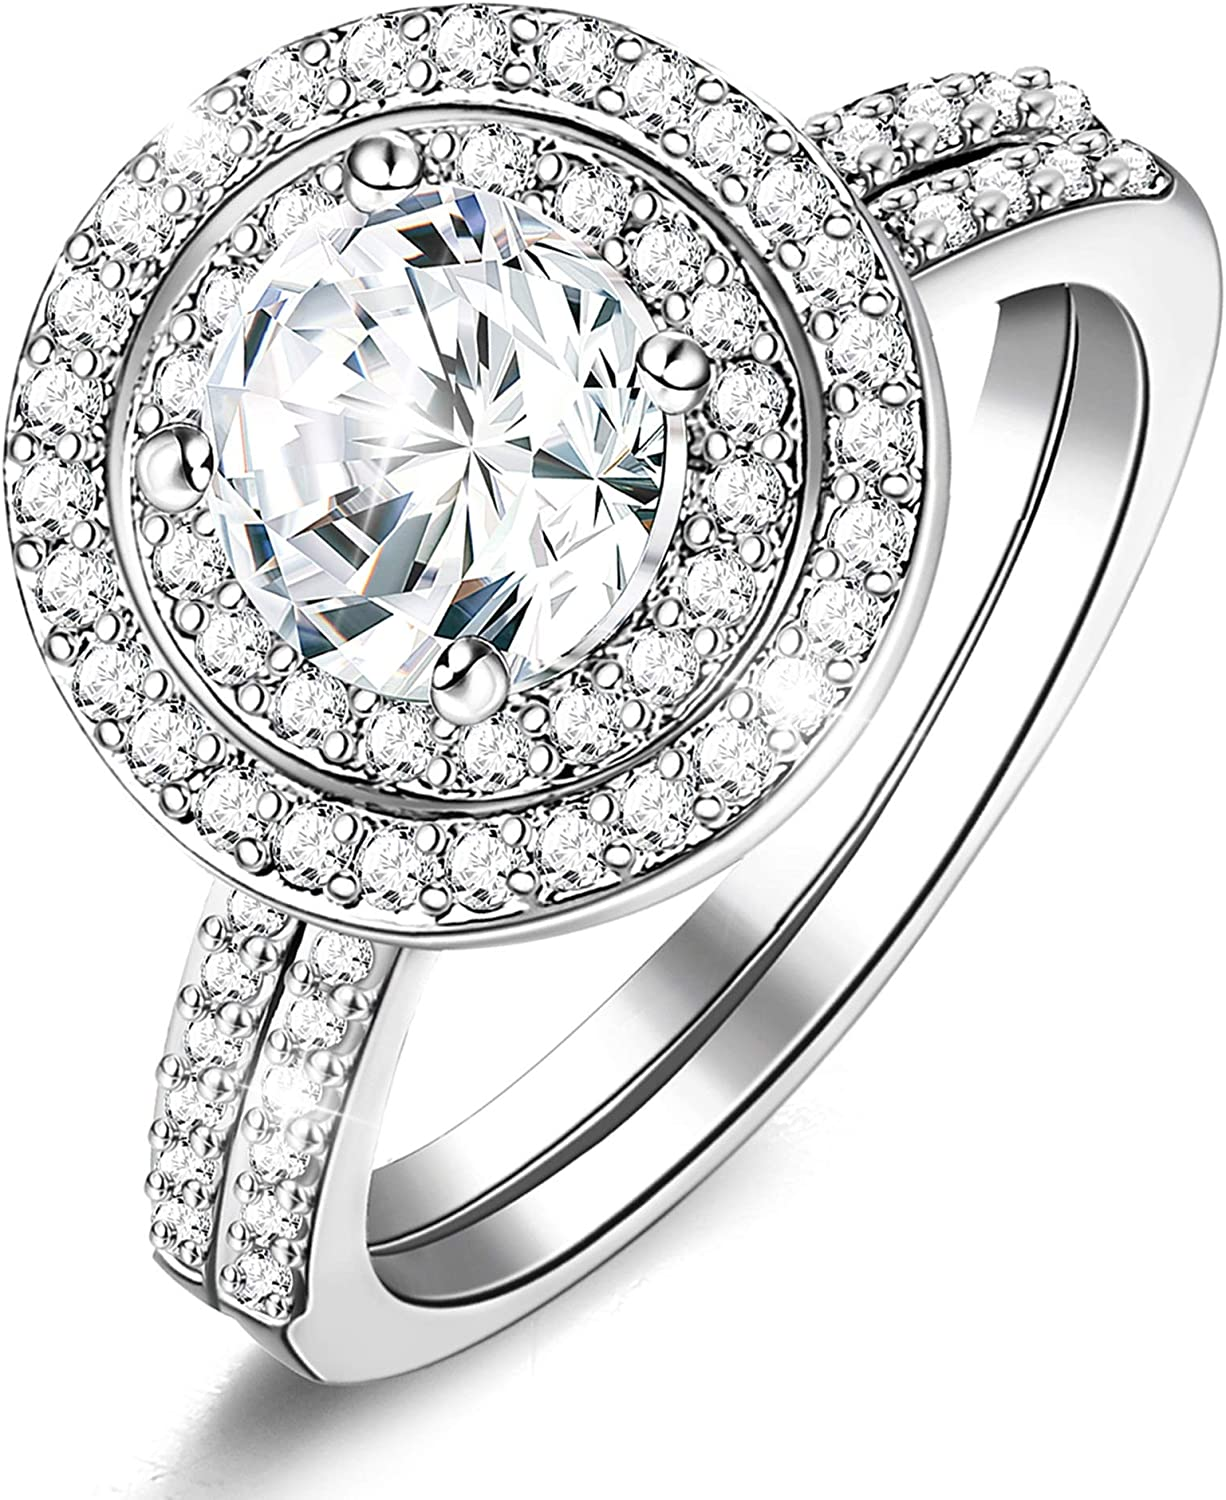 Subiceto Cubic Zirconia Halo Wedding Rings White Gold Plated Two-in-one Engagement Promise Bridal Rings Sets for Women (Size 5-9)